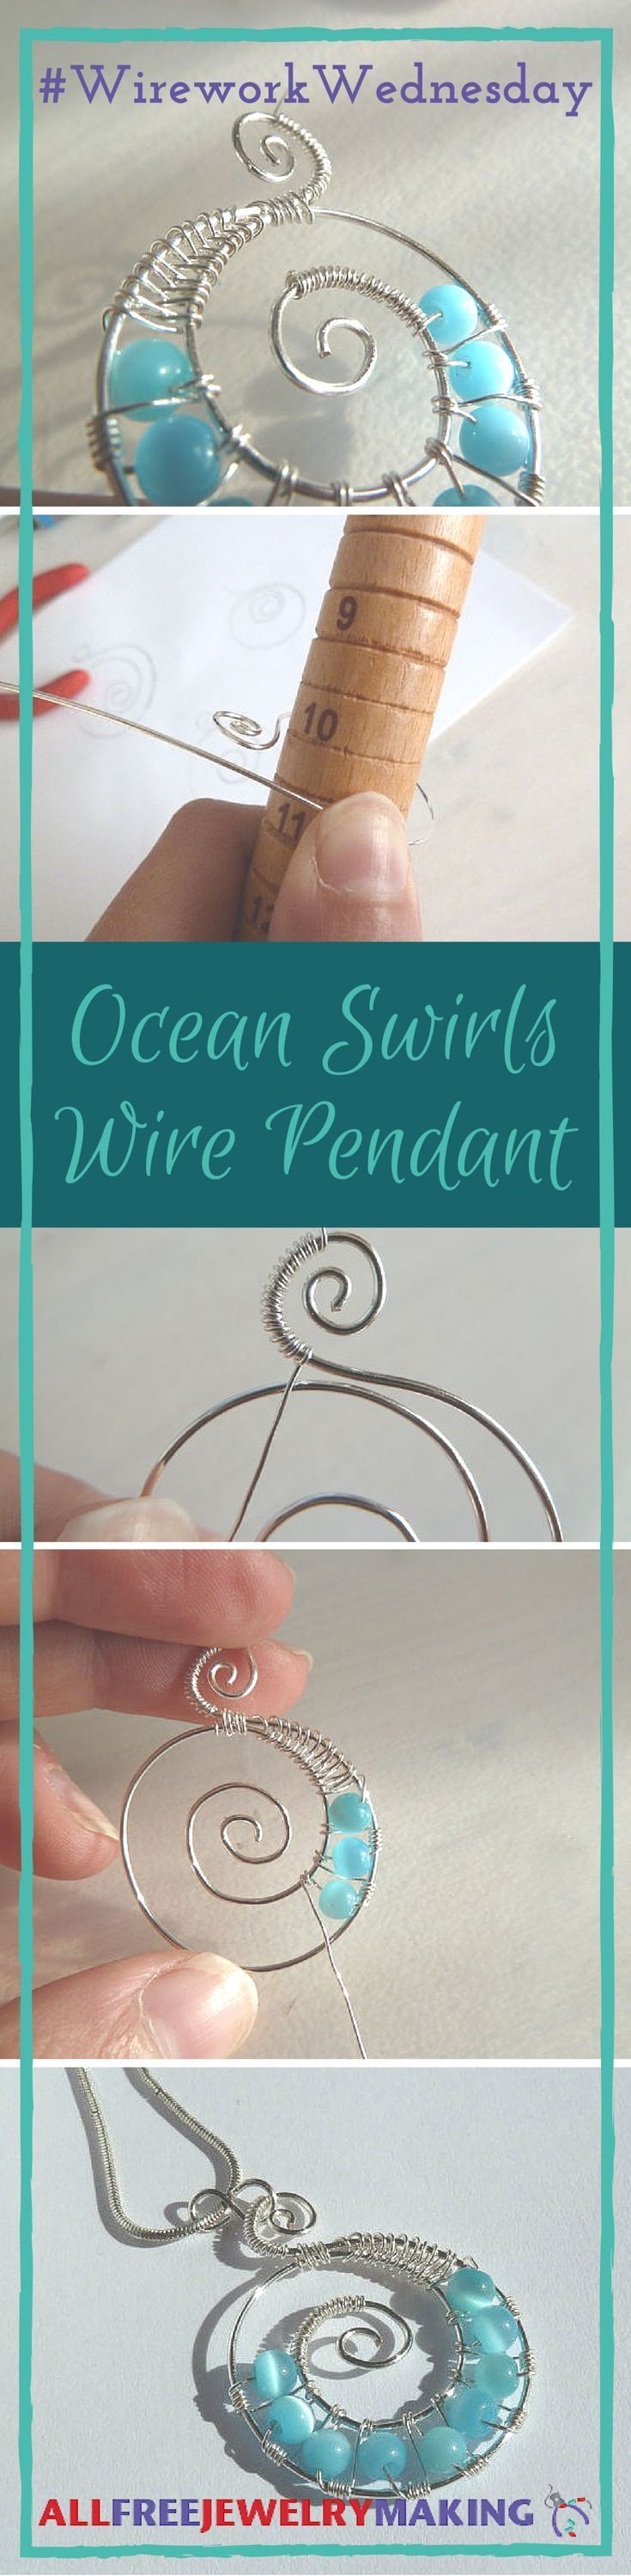 Expand your wire jewelry making skills and create a stunning DIY pendant with the Ocean Swirls Wire Pendant. Inspired by the majestic aqua hues and spiraling wa